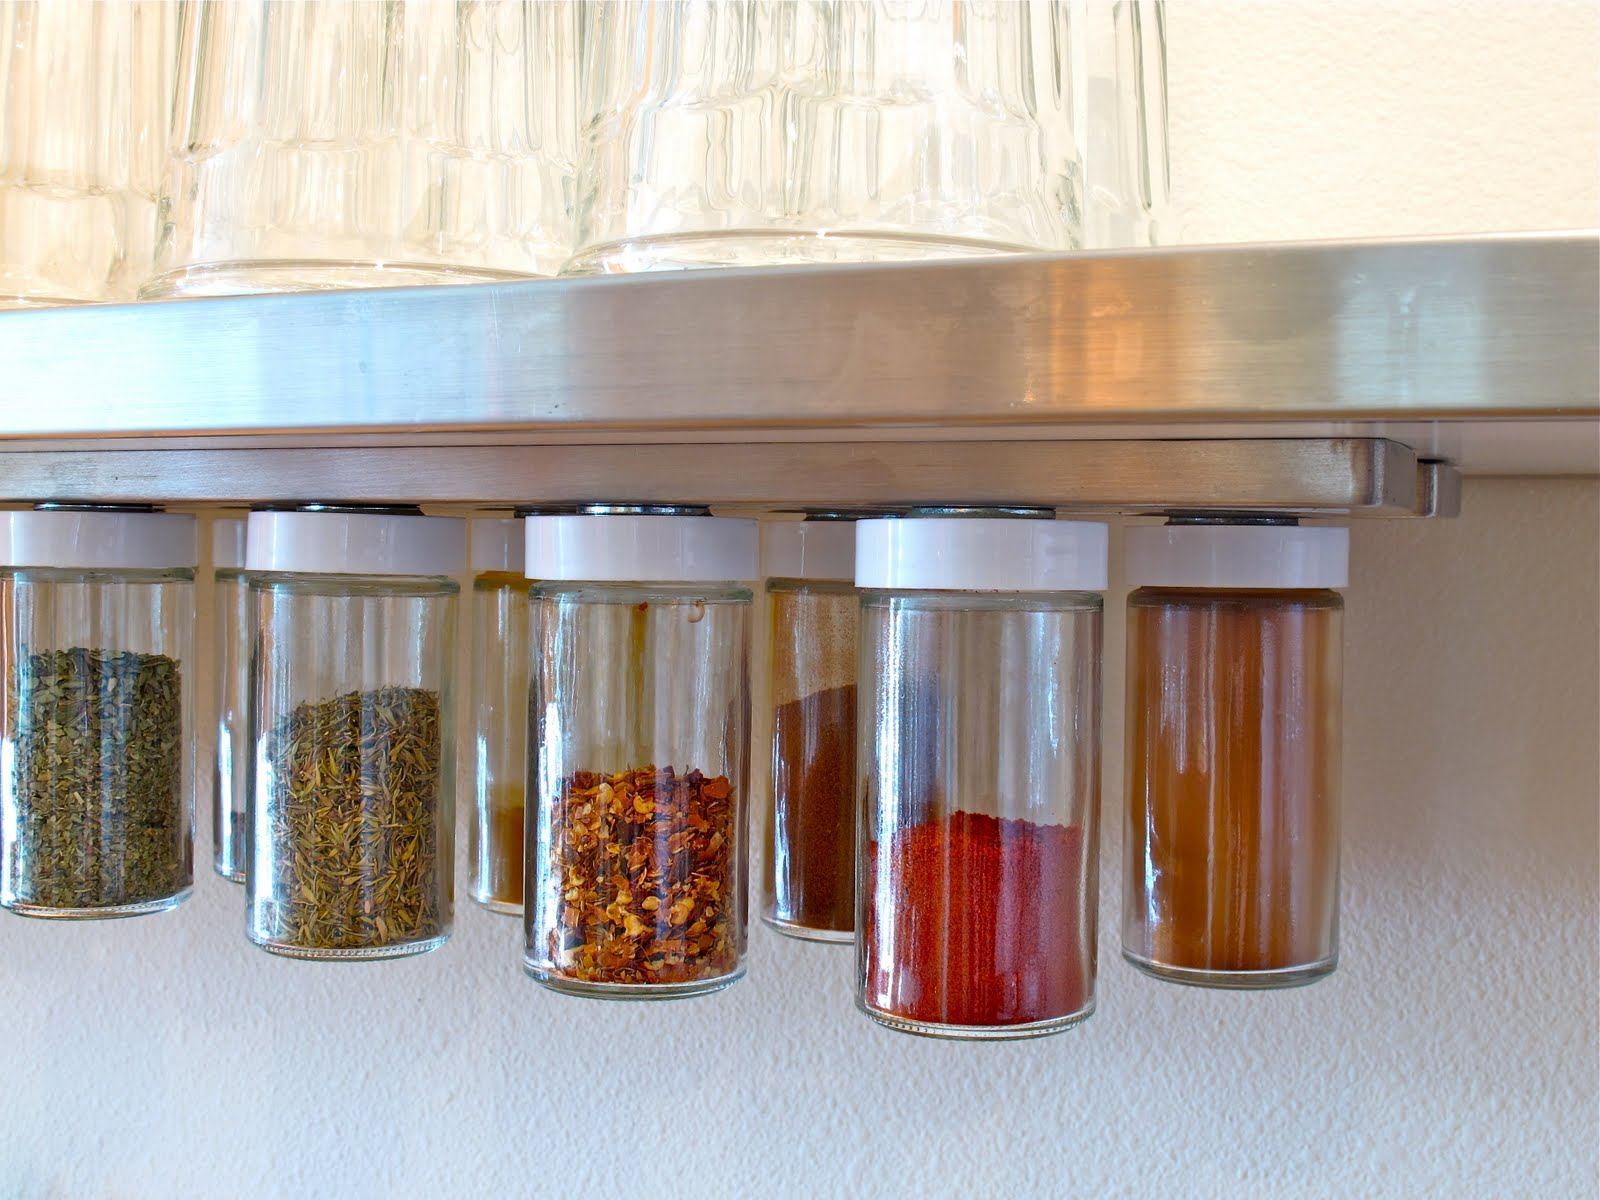 Ikea wooden spice racks home design jobs - Ikea kitchen spice rack ...